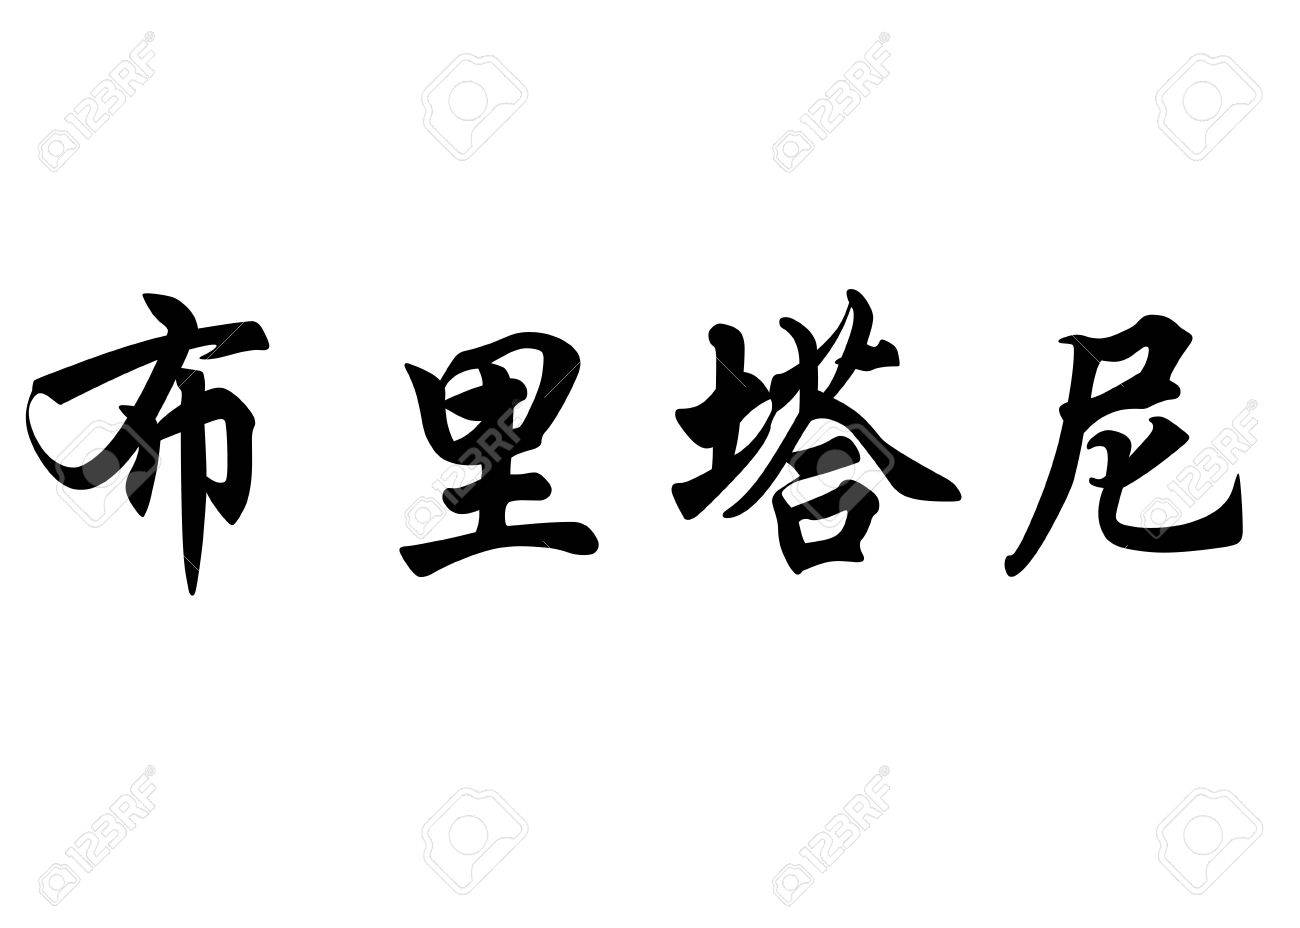 English Name Britanny Or Brittany In Chinese Kanji Calligraphy